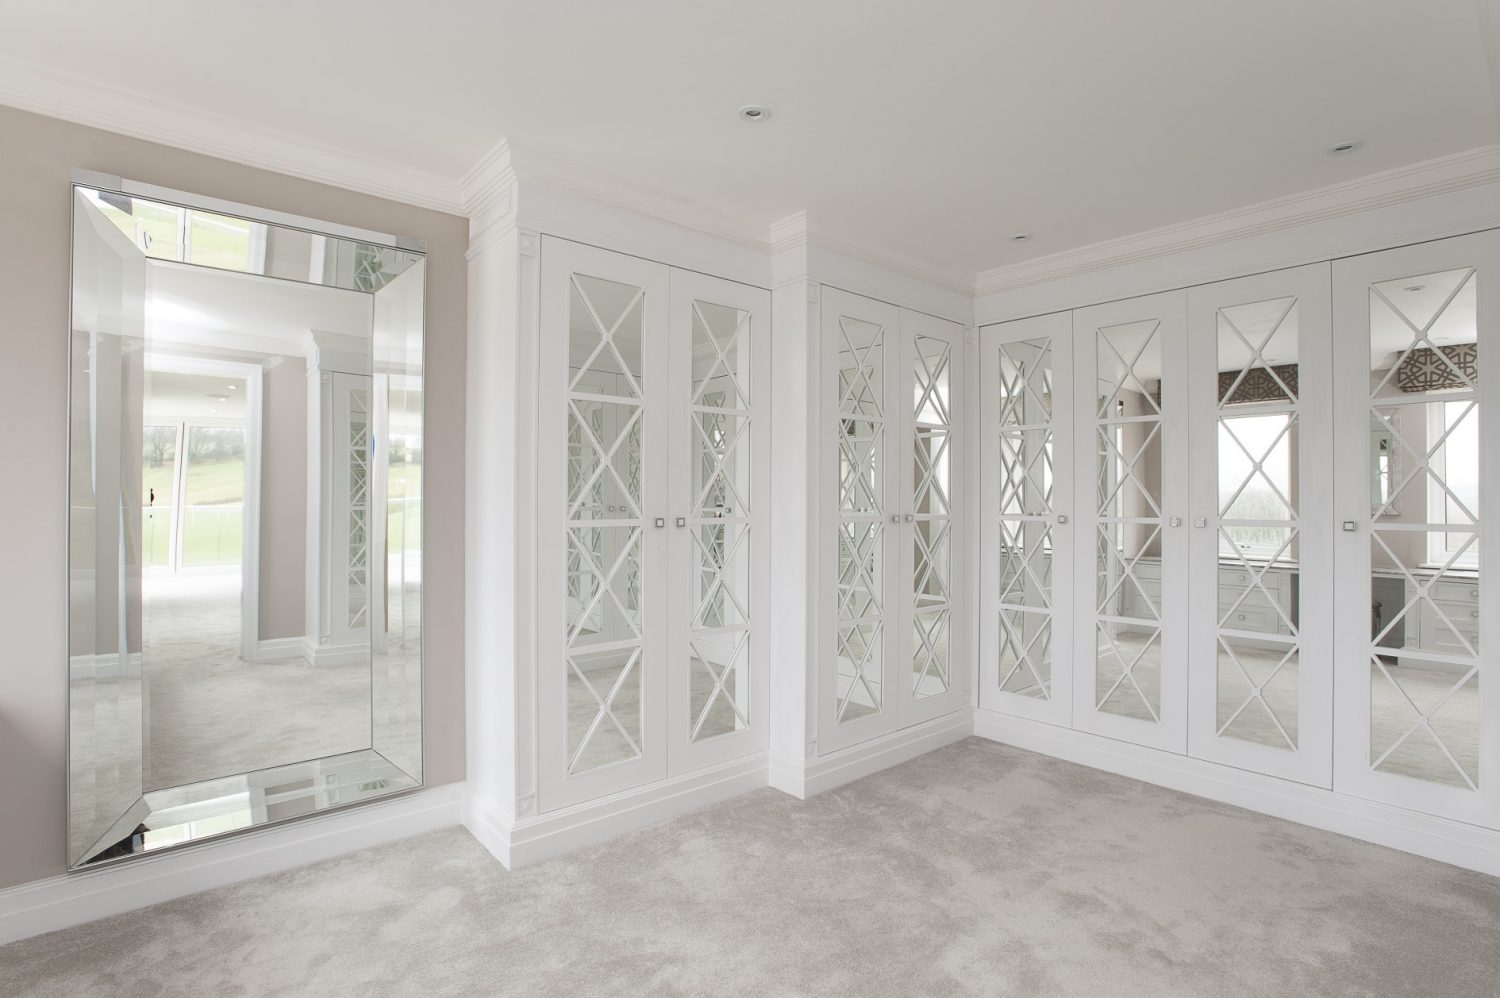 The mirrored dressing room